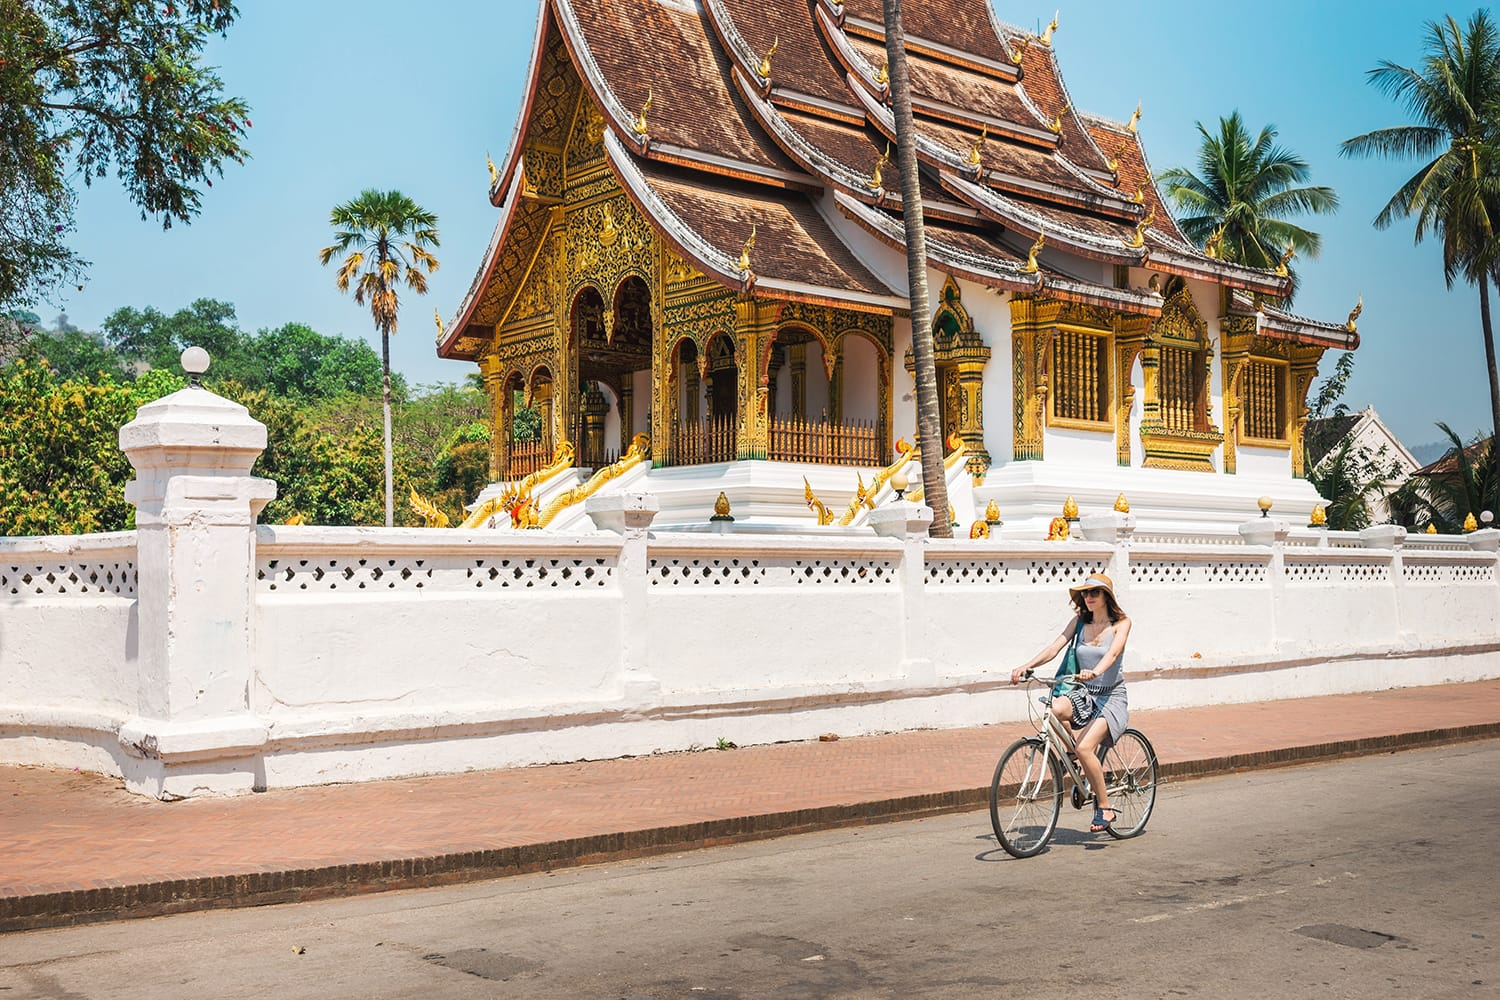 Girl tourist riding a bicycle in Luang Prabang against the backdrop of a traditional temple.A popular way among tourists is to visit Luang Prabang in Laos - a bicycle.